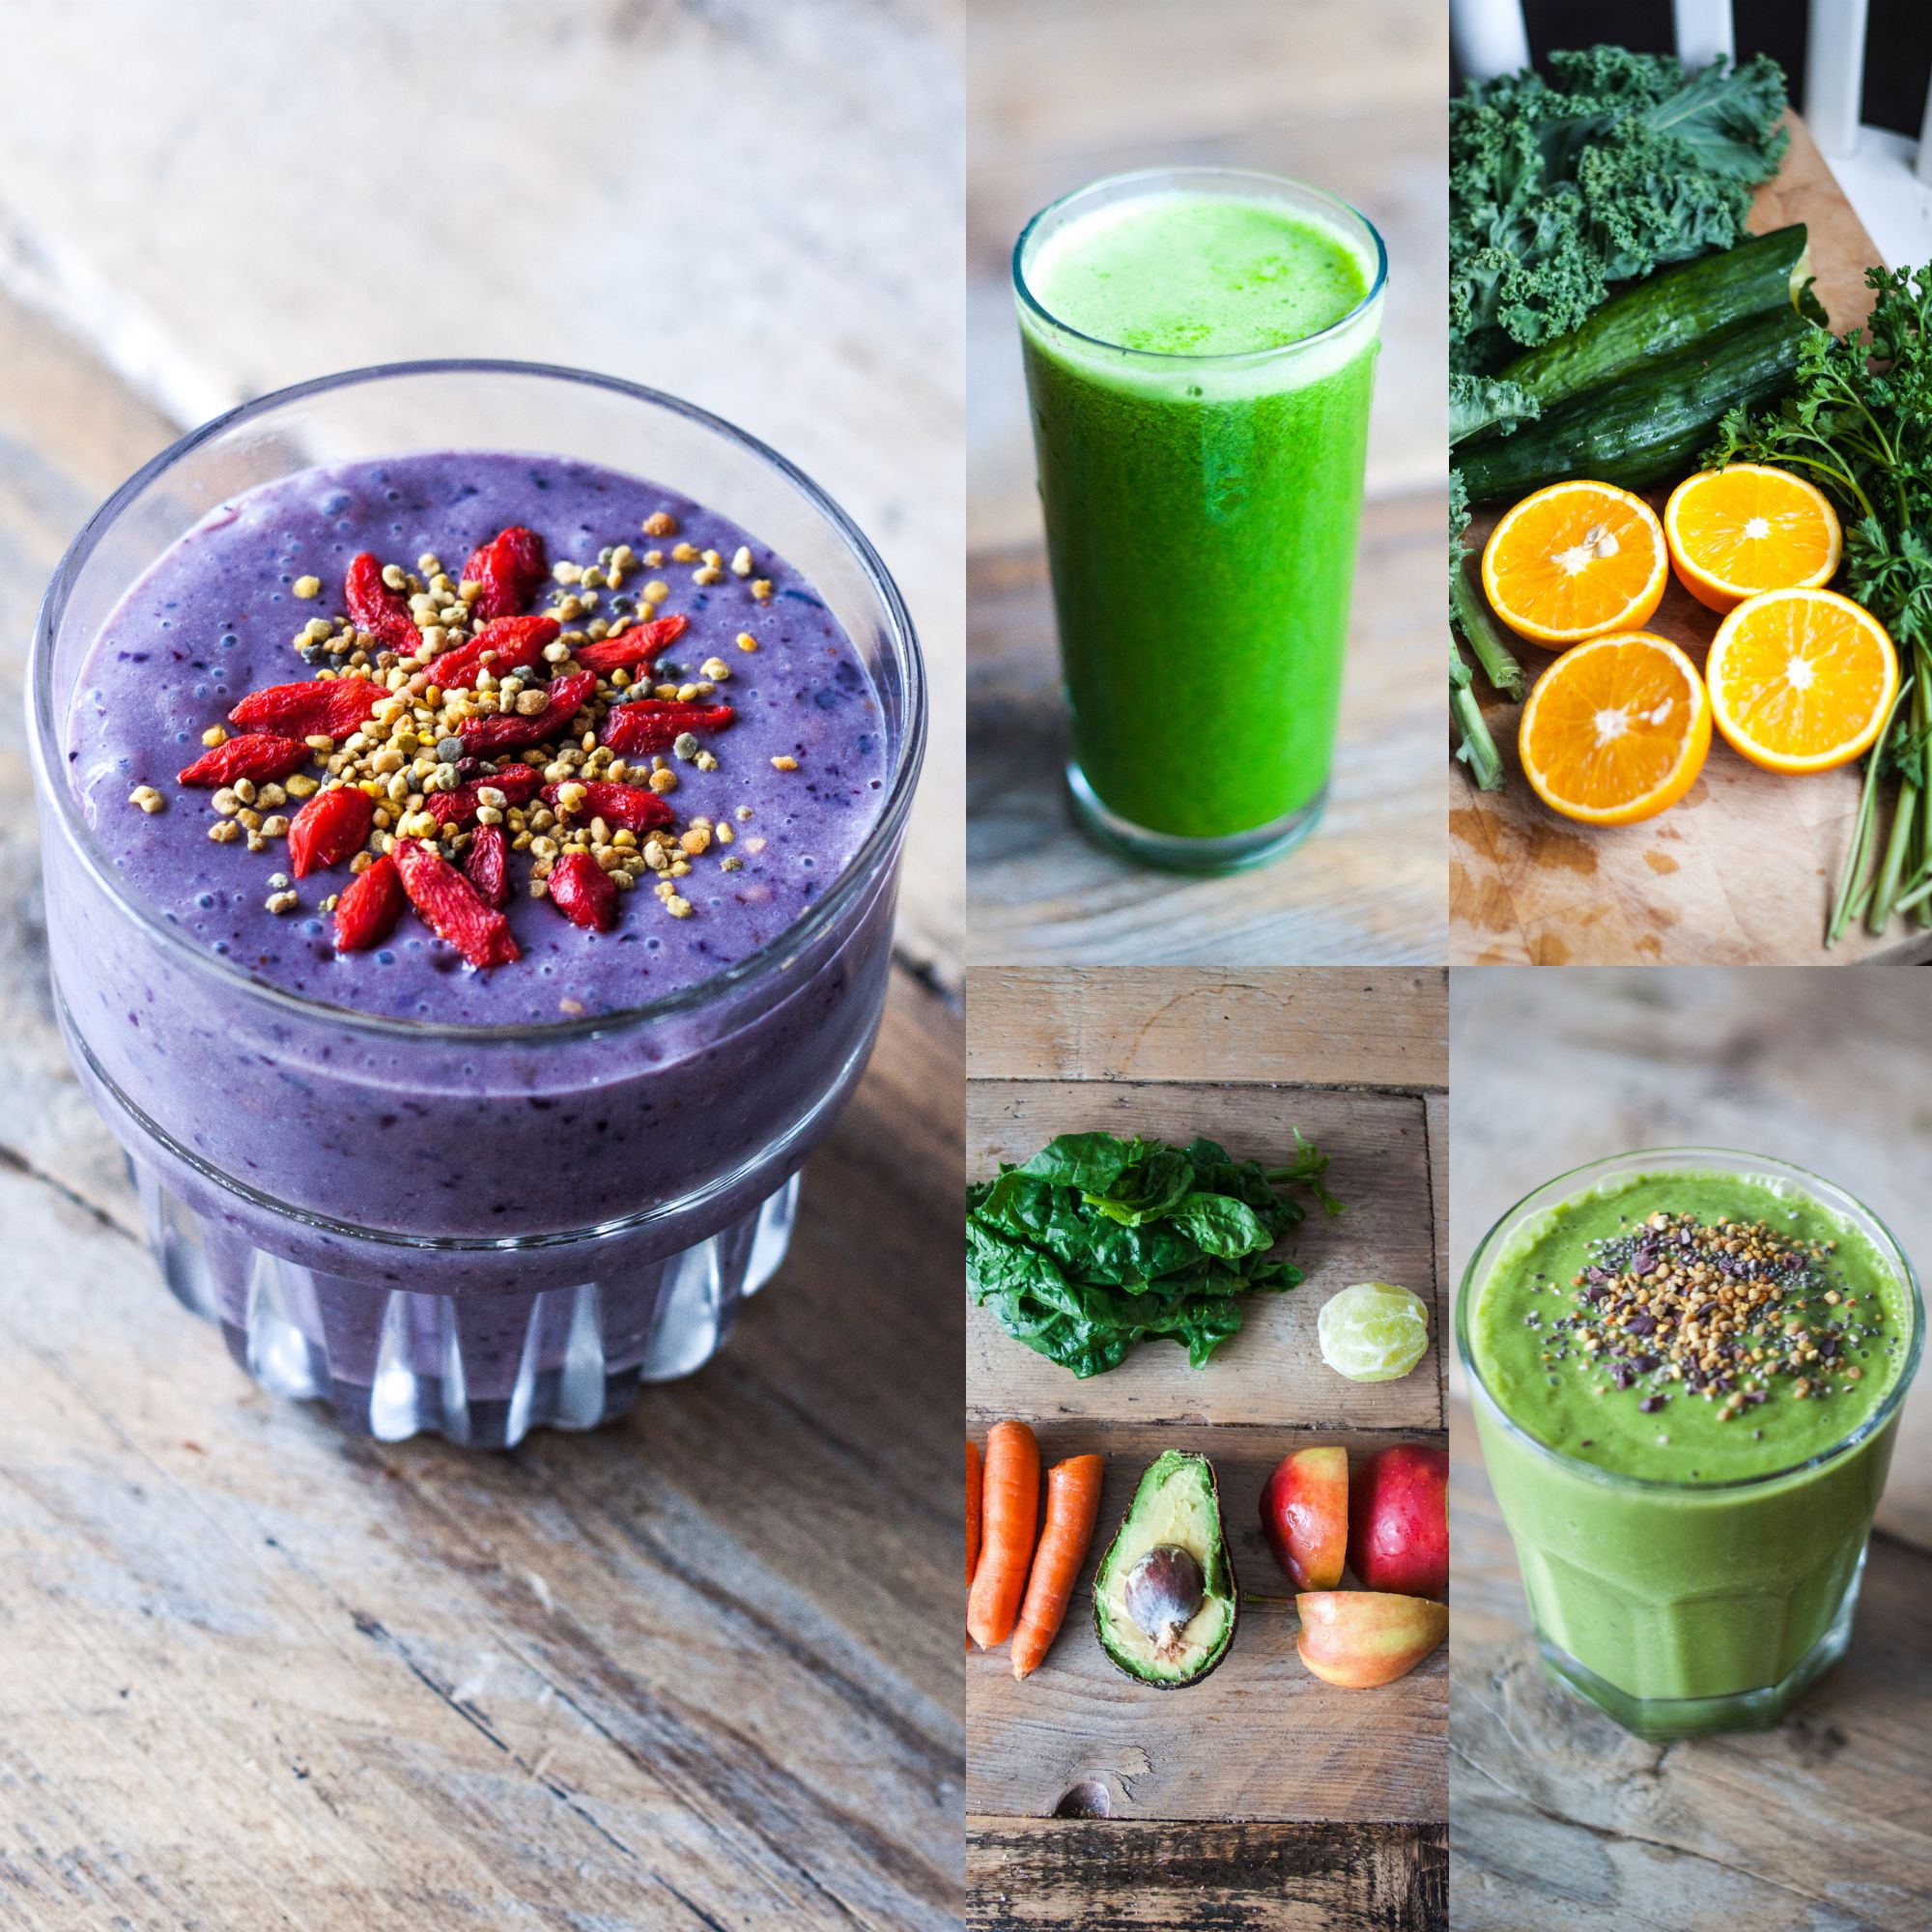 Food matters superfoods recipe book fitness pinterest food matters superfoods recipe book forumfinder Images